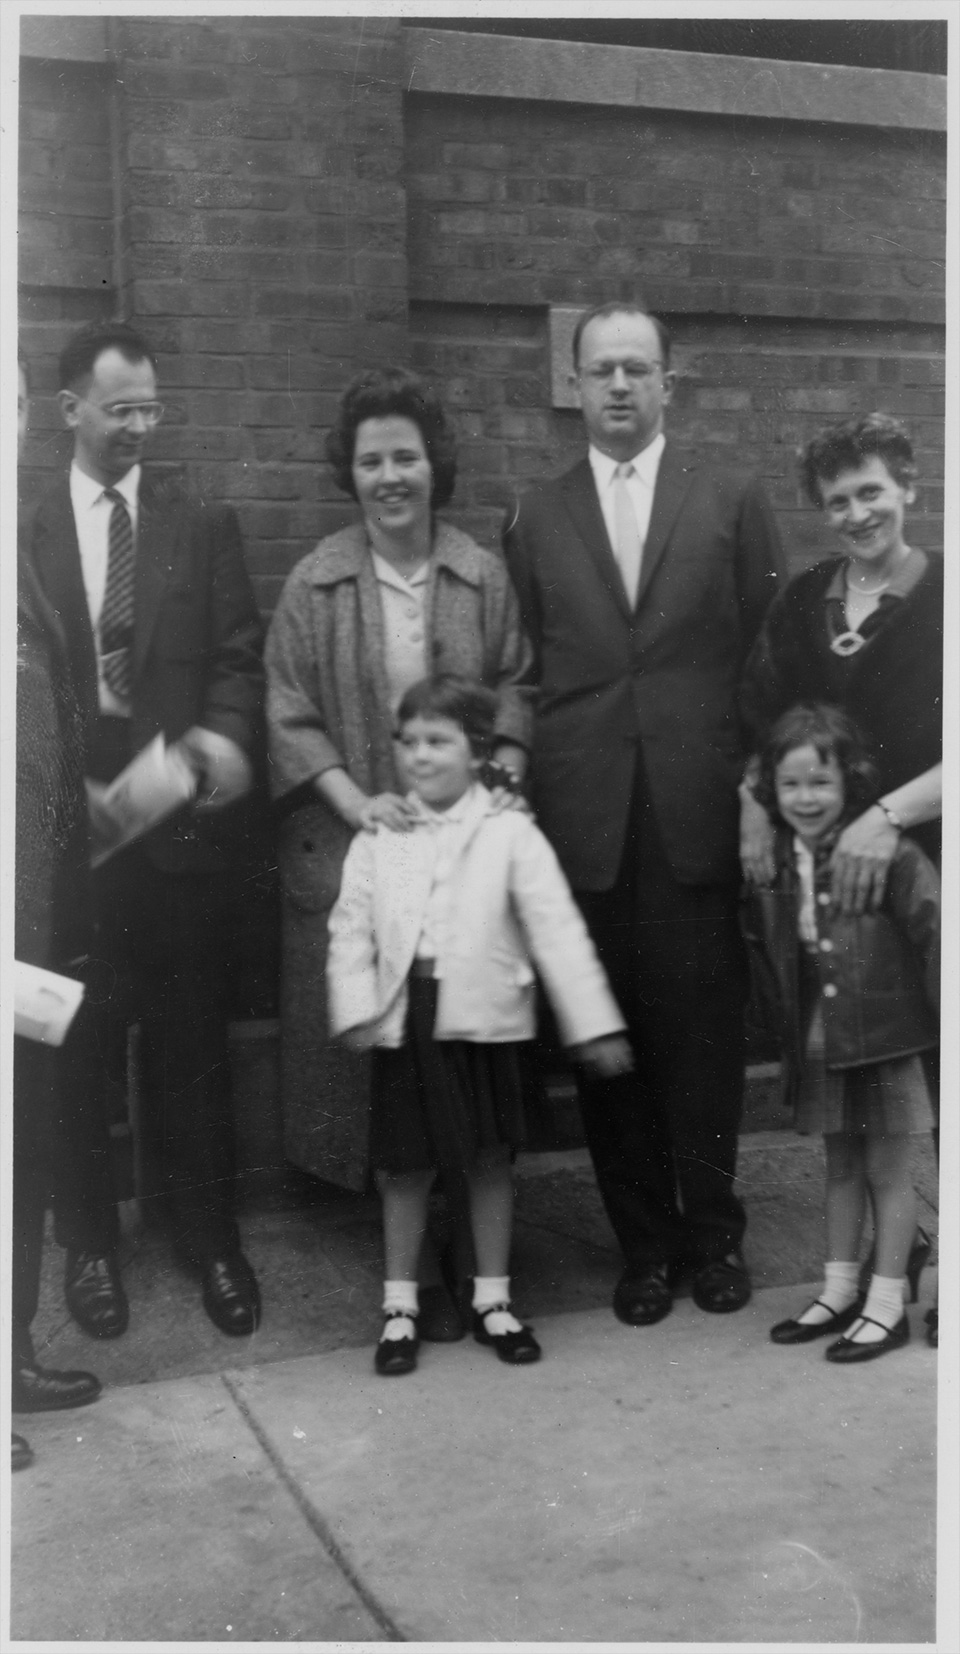 Unidentified man who is partially cut off; Marc, Rita, R.S., and Rosamond Mendelsohn stand in front of a brick-walled building. Rita has her hands in front of her on Ruth's shoulders, as does Rosamond on Sally's shoulders. Rosamond, Sally, Rita, and Ruth are smiling.